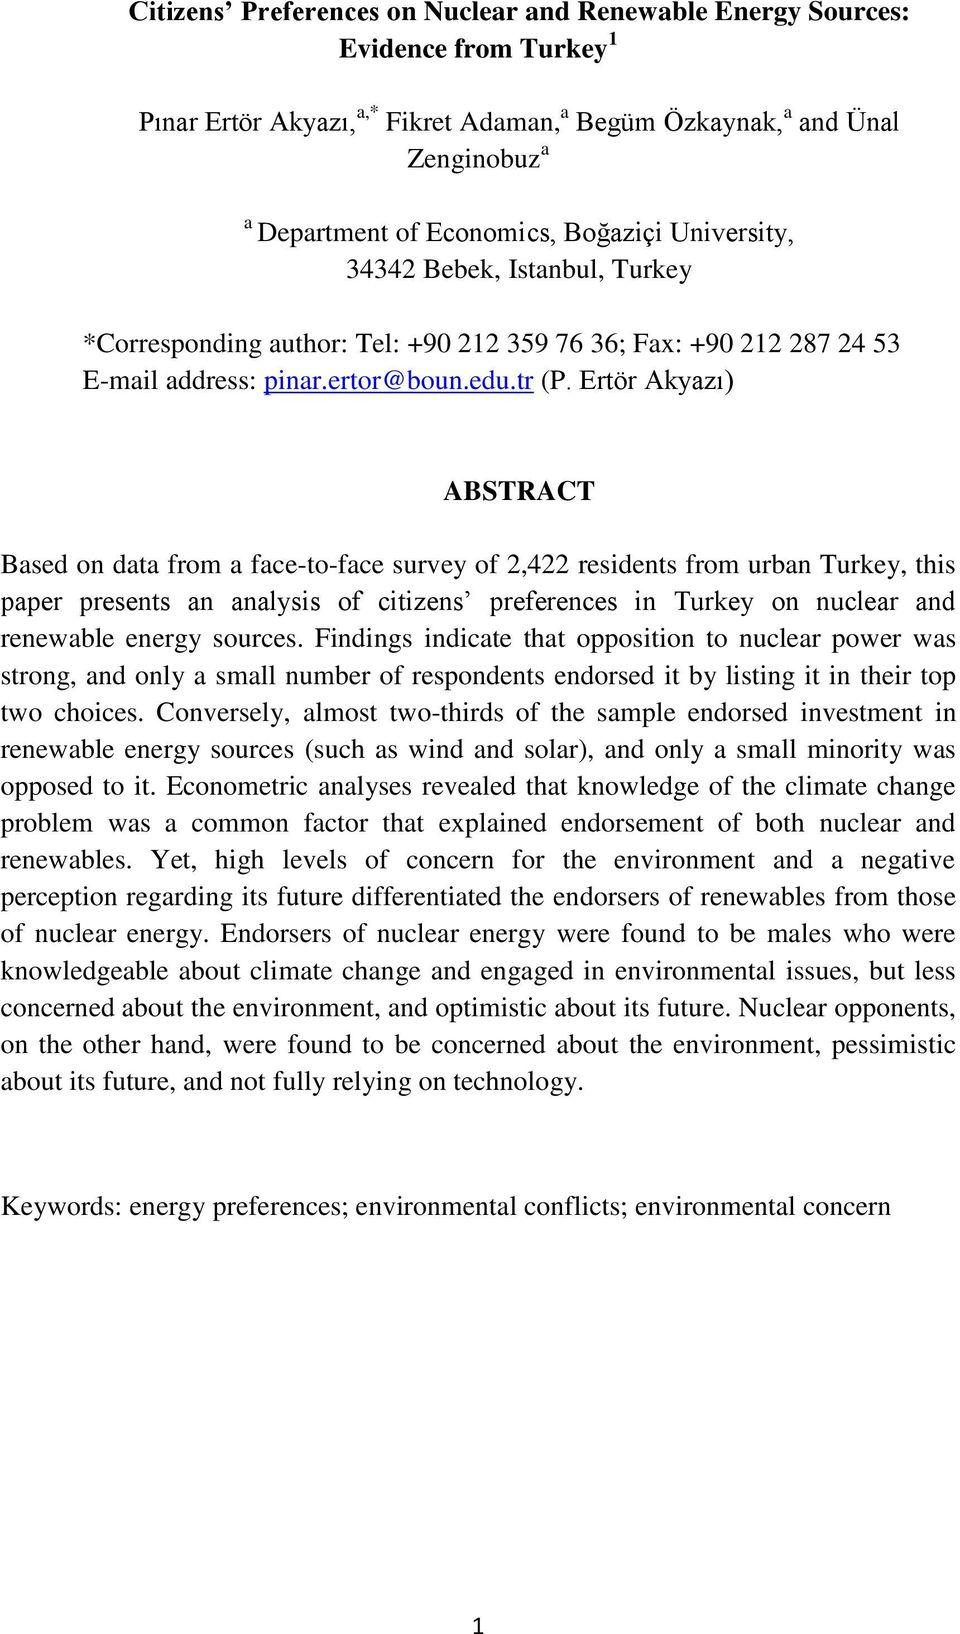 Ertör Akyazı) ABSTRACT Based on data from a face-to-face survey of 2,422 residents from urban Turkey, this paper presents an analysis of citizens preferences in Turkey on nuclear and renewable energy